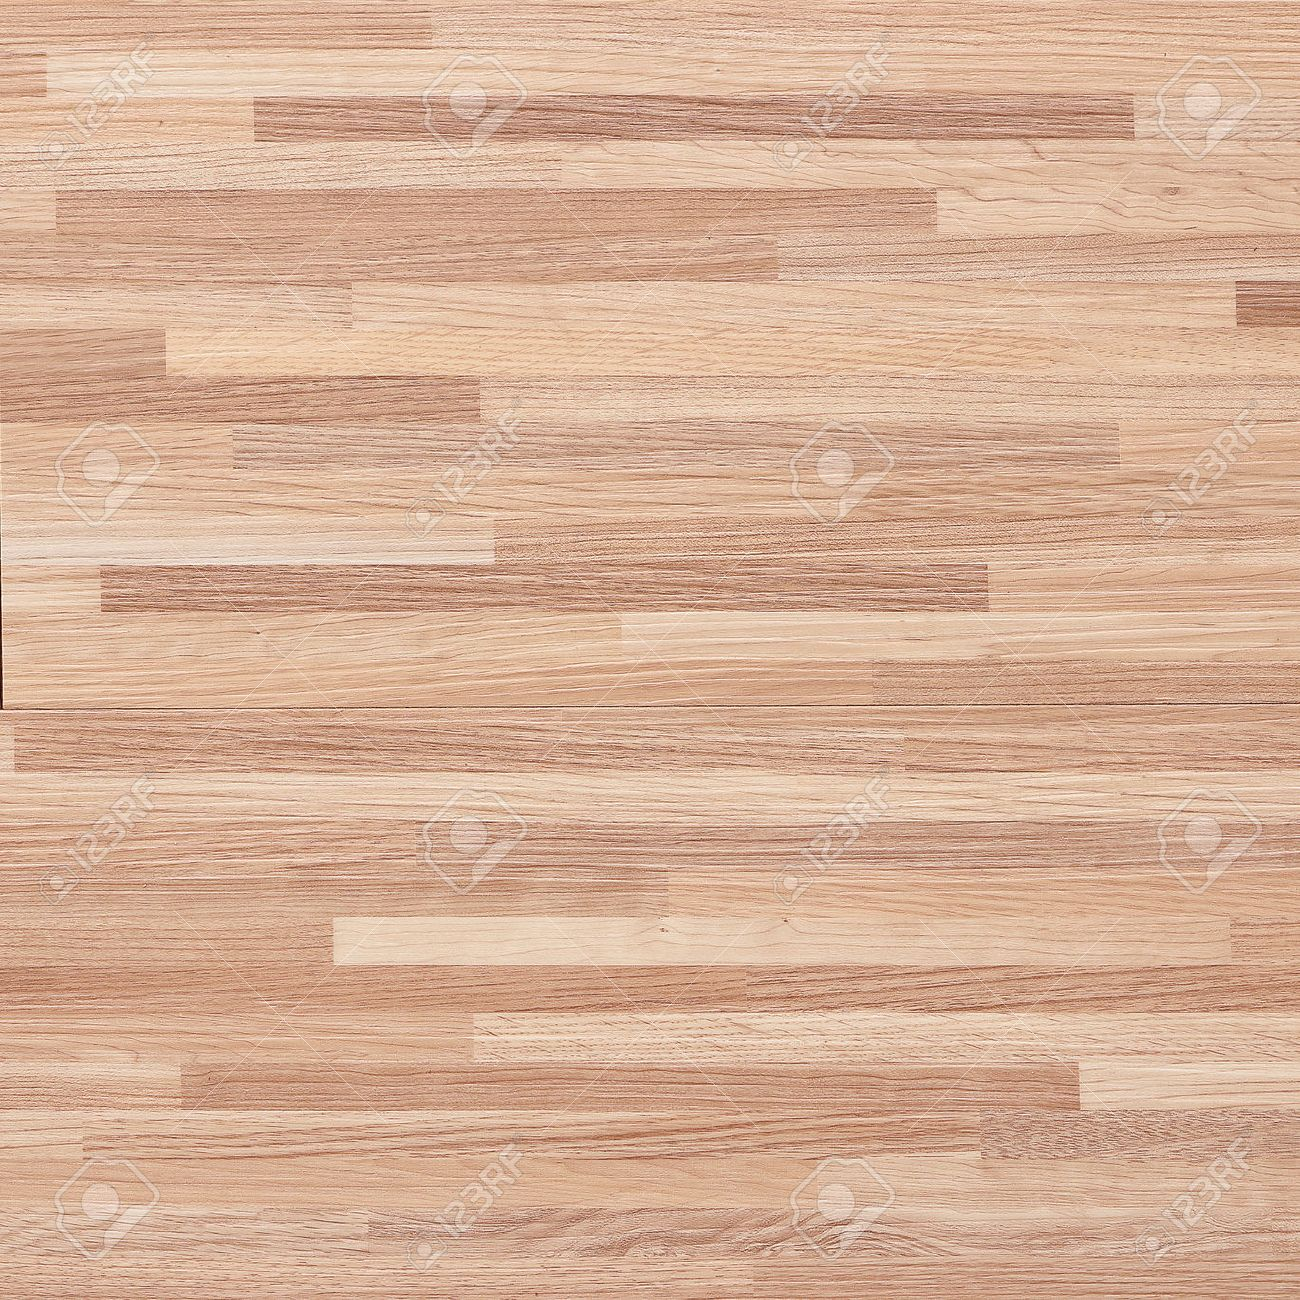 laminate flooring texture seamless seamless oak laminate parquet floor texture background stock photo -  40287859 PNDELZA